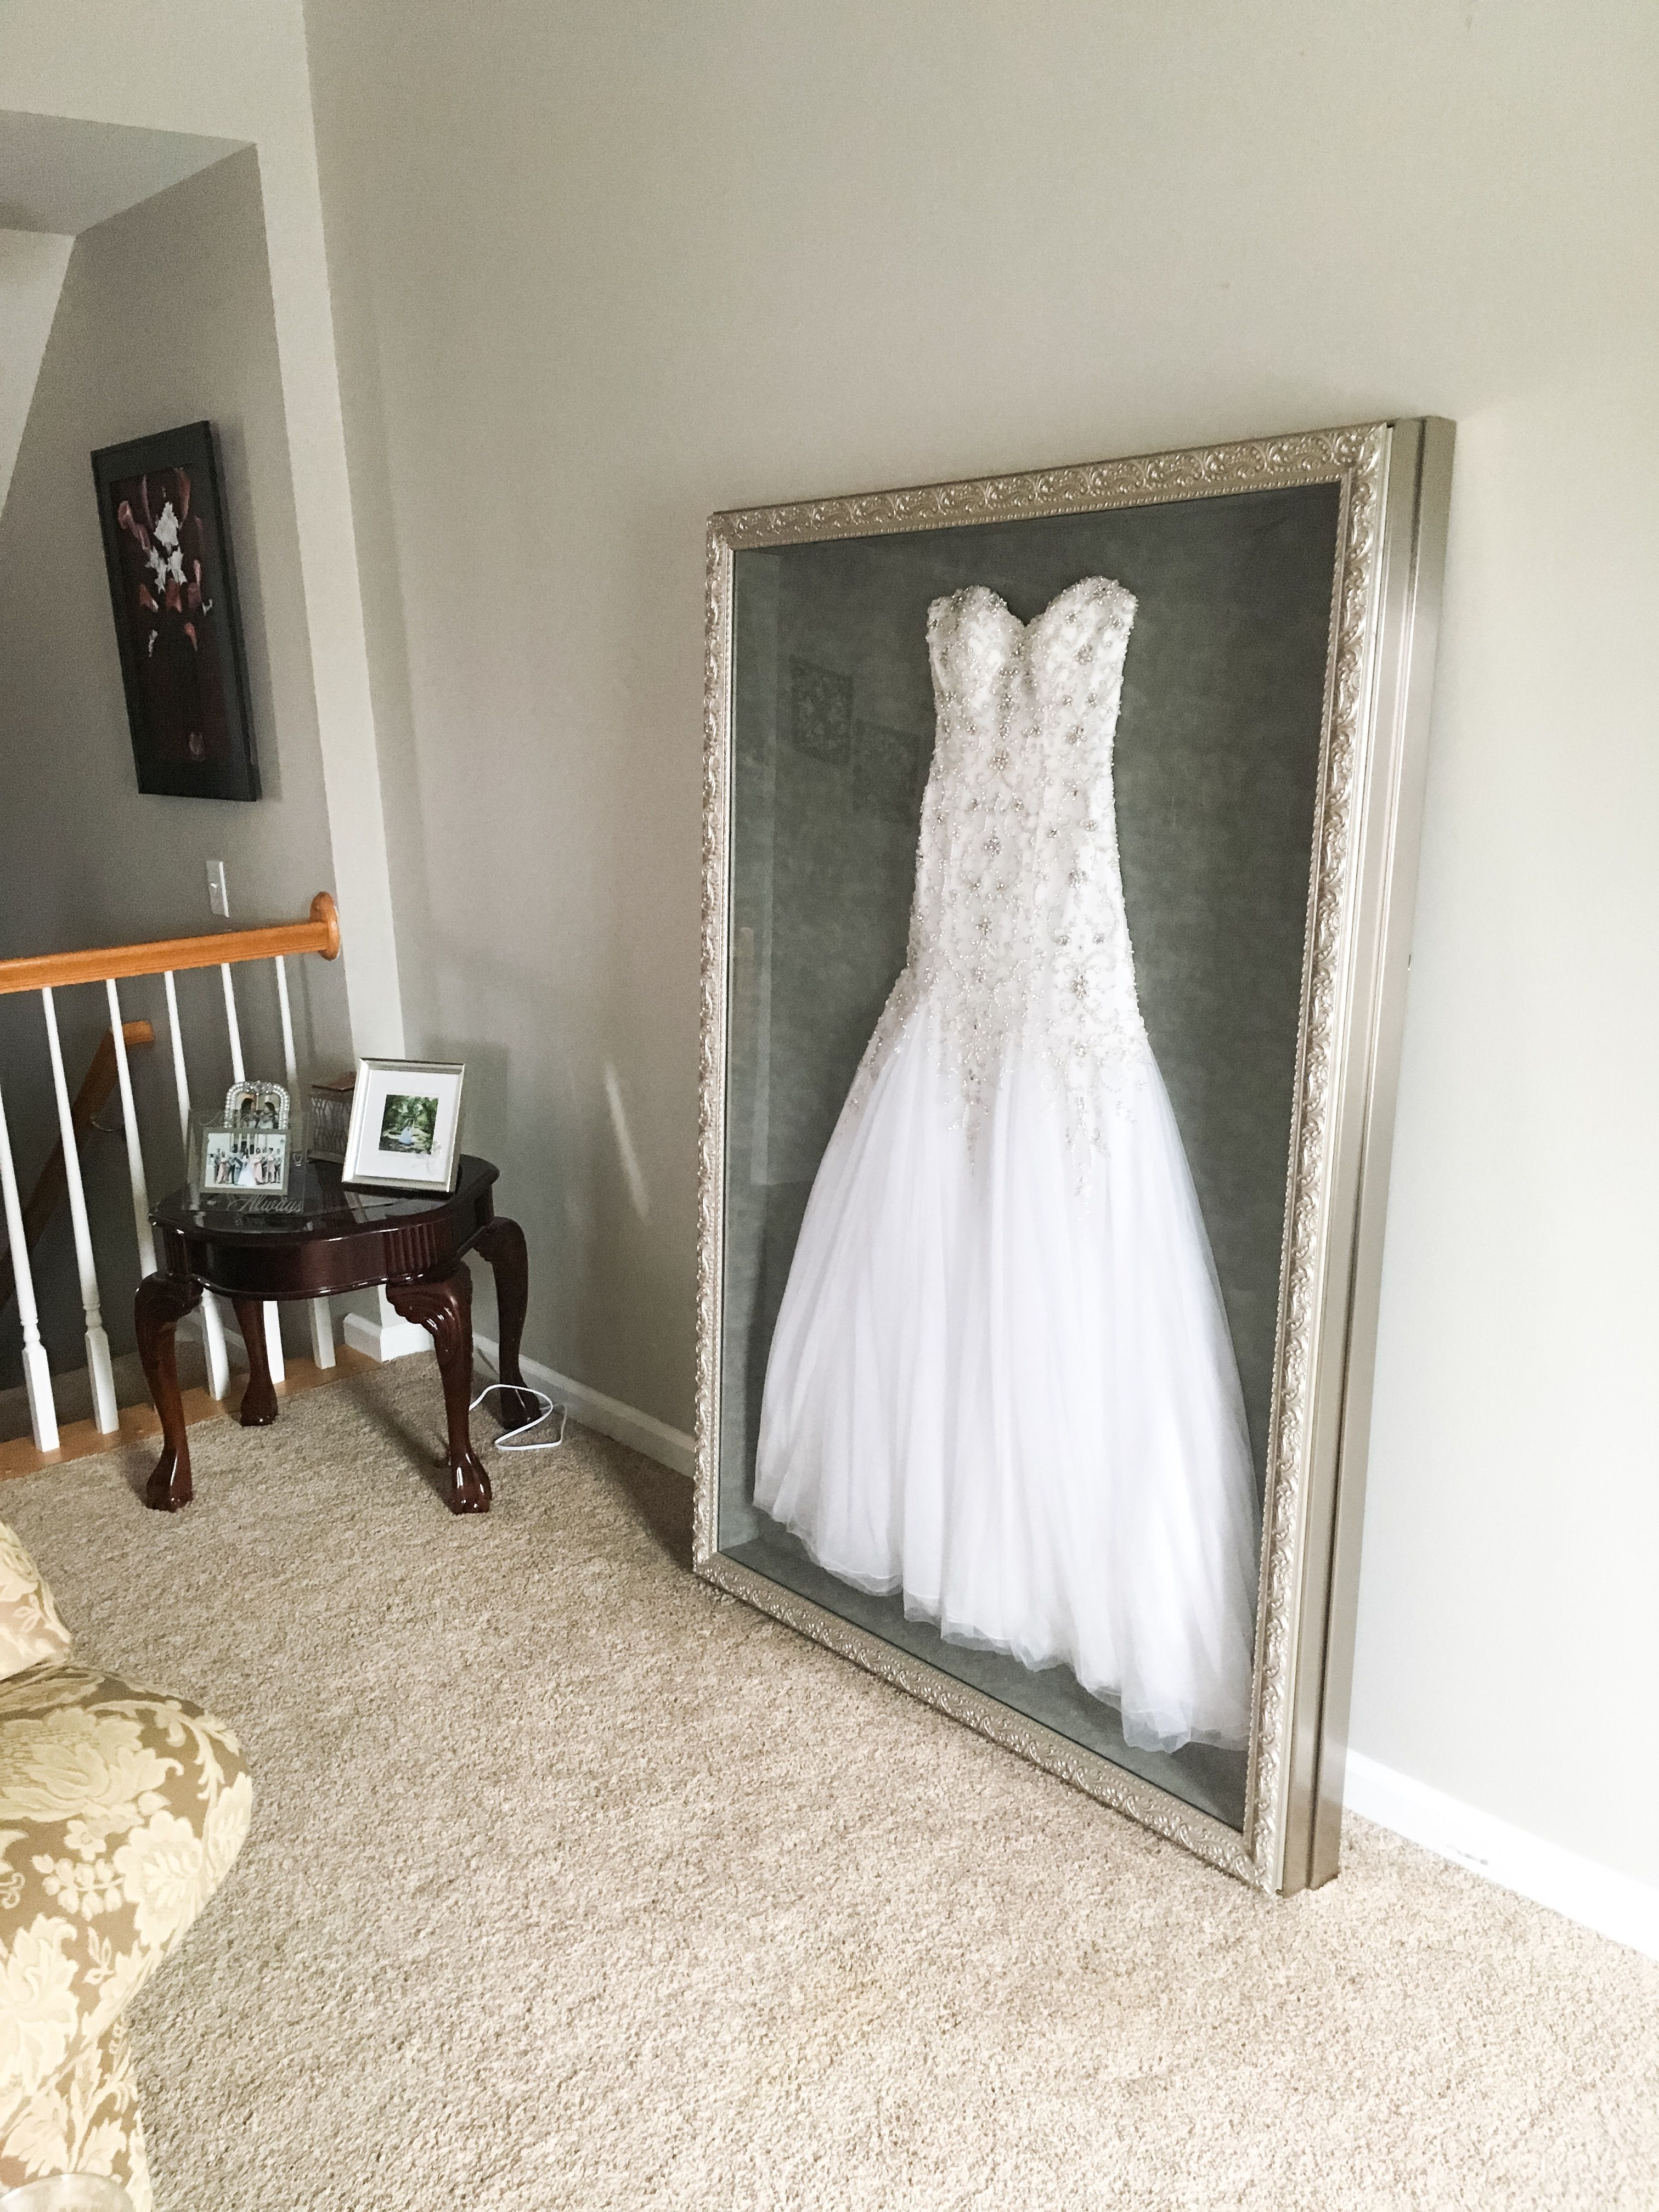 Wedding dress preservation box  Instead of putting my wedding dress in a box hidden in the attic or